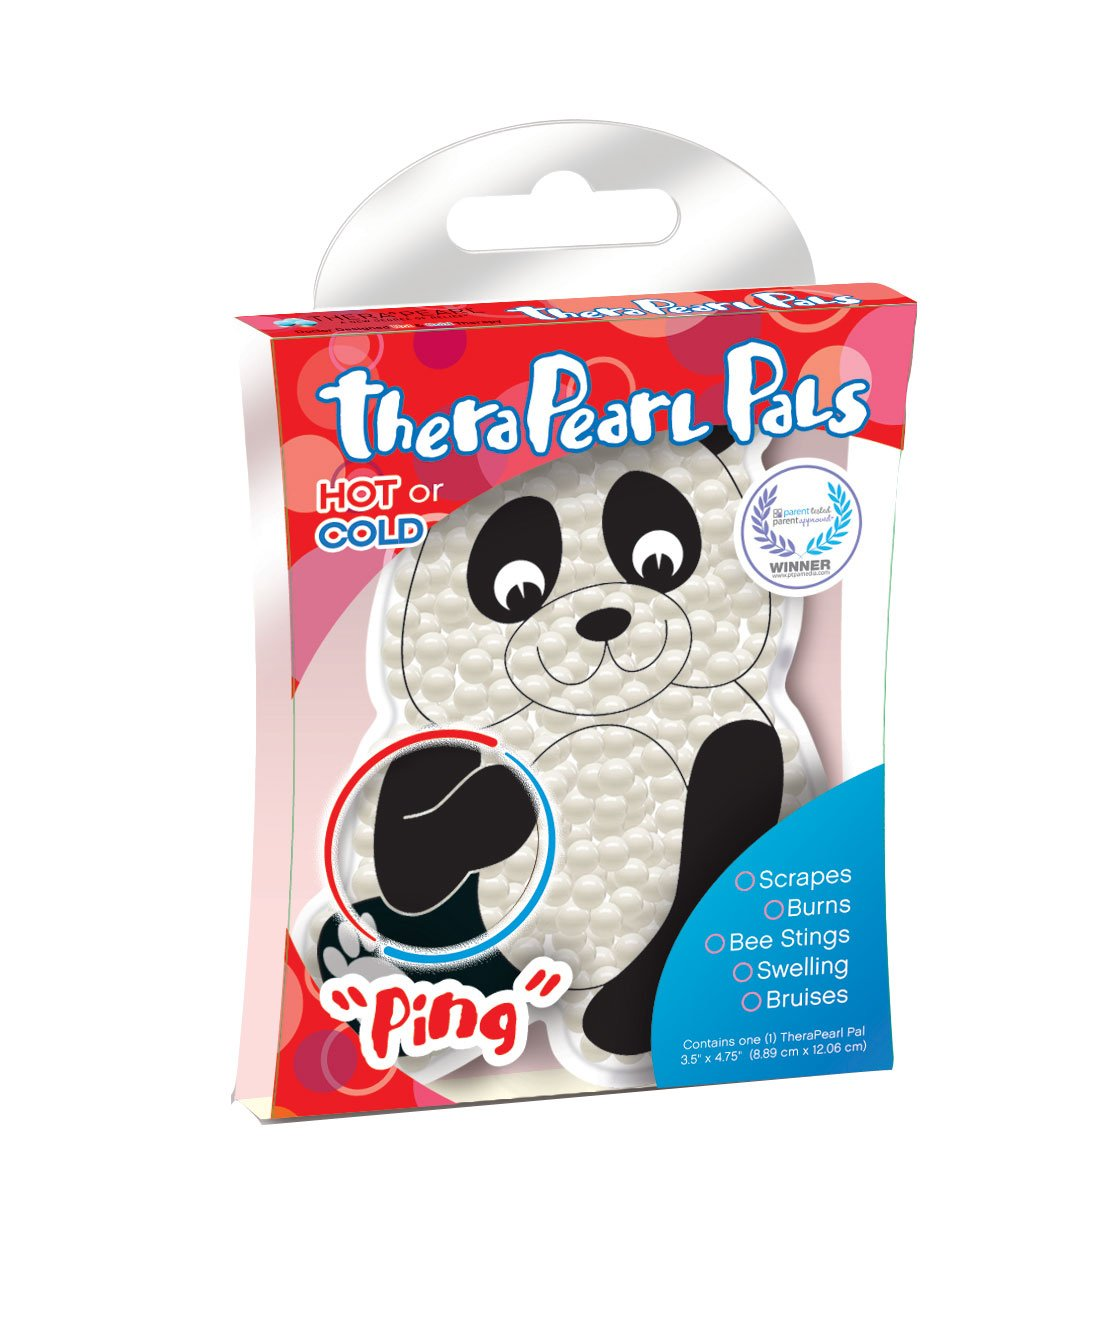 TheraPearl Children's Pals, Ping the Panda, Non Toxic Reusable Animal Shaped Hot Cold Therapy Pack, Flexible Compress for Injuries, Swelling, Pain Relief, Bee Stings by THERA°PEARL